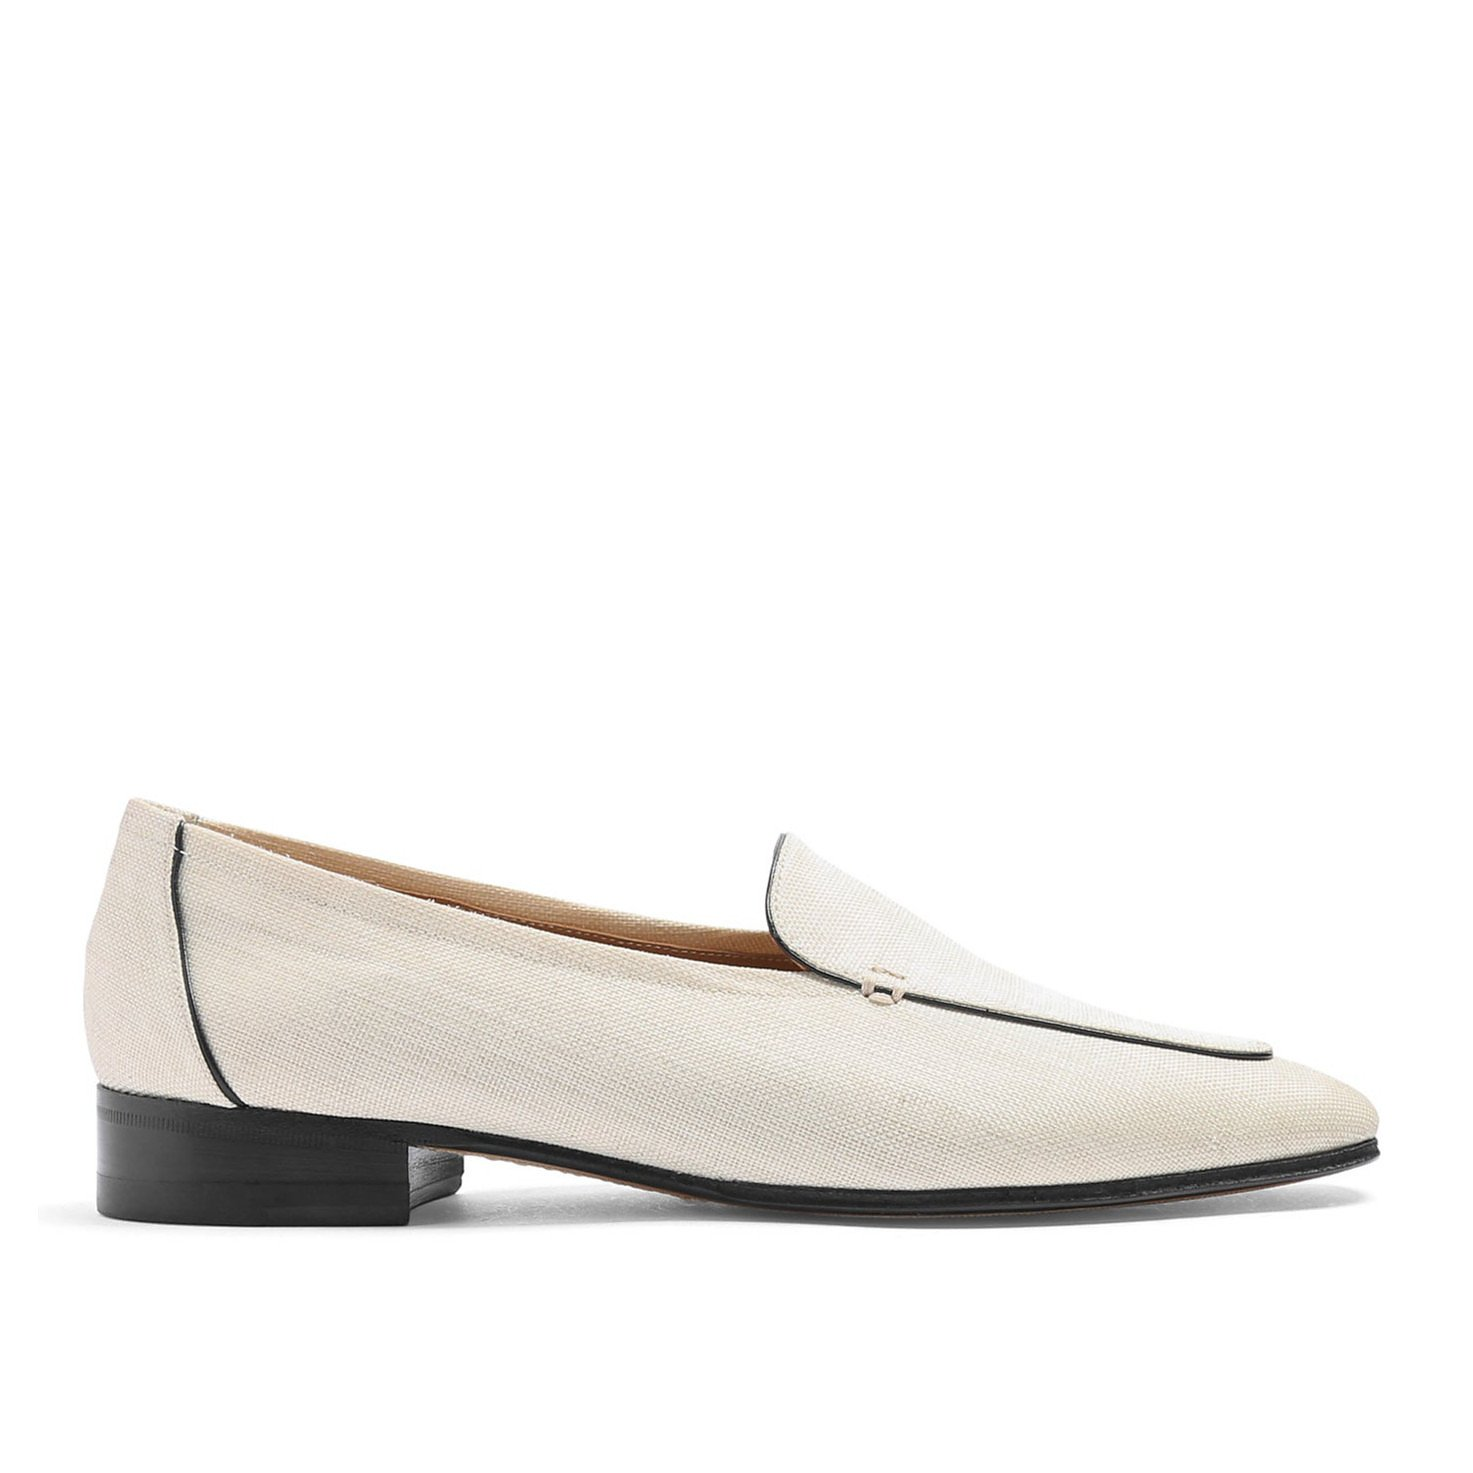 The Row Adam Loafers